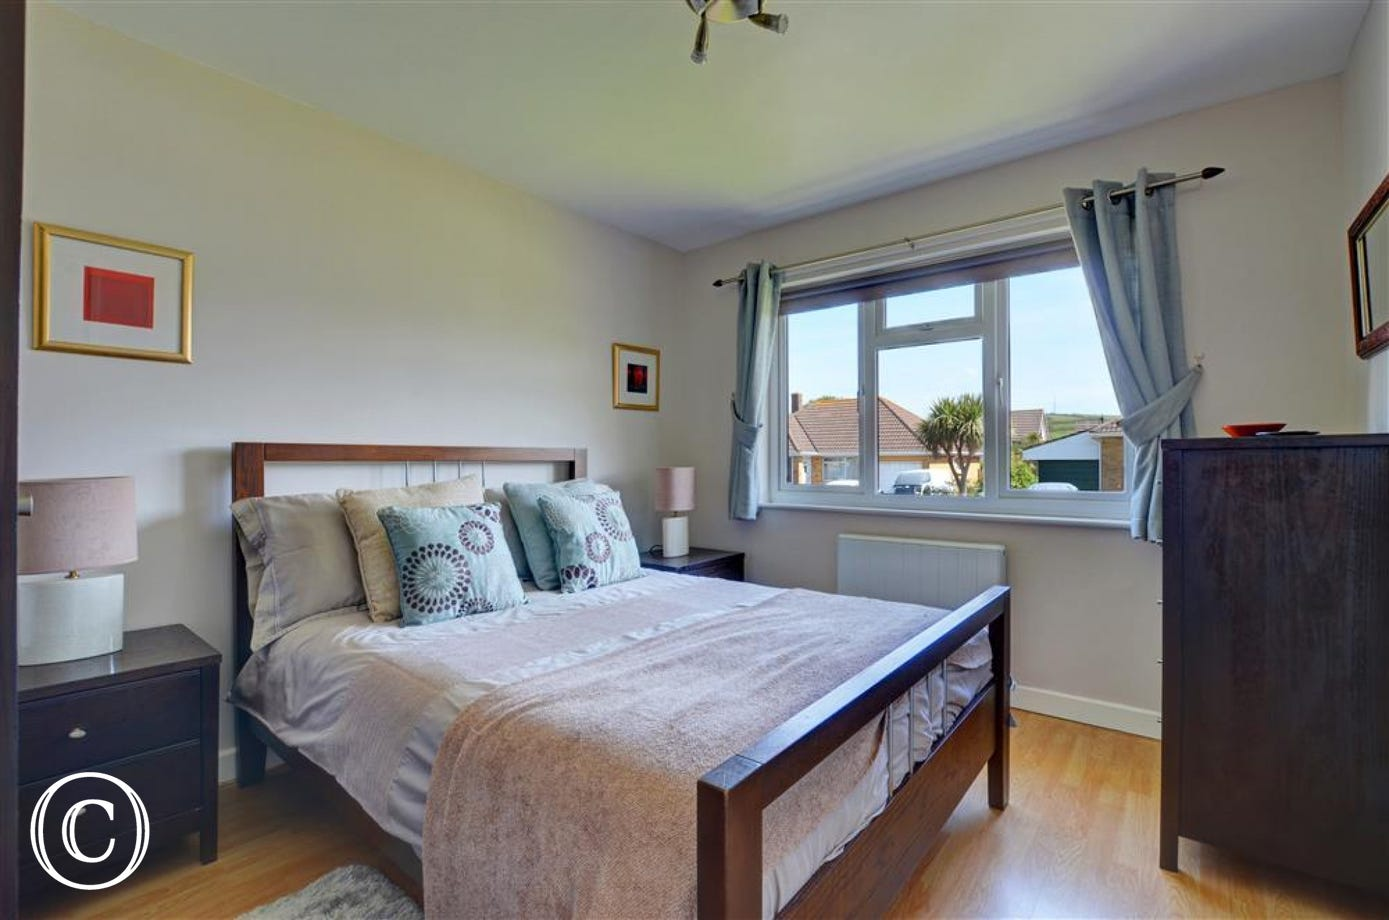 Tastefully decorated and stylish double bedroom